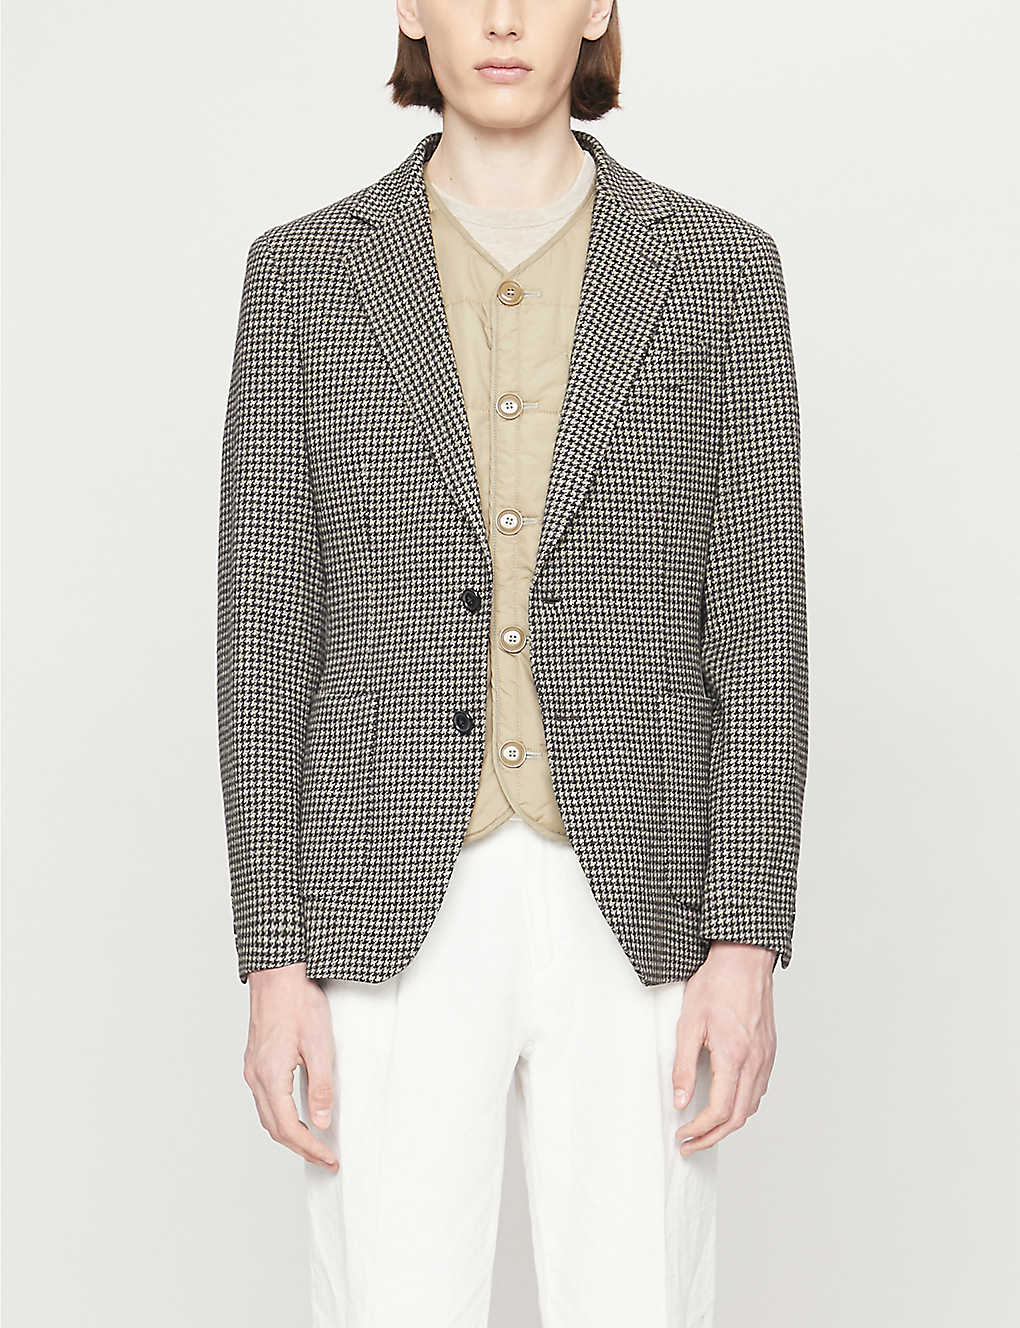 REISS: Pinot houndstooth stretch-woven blazer